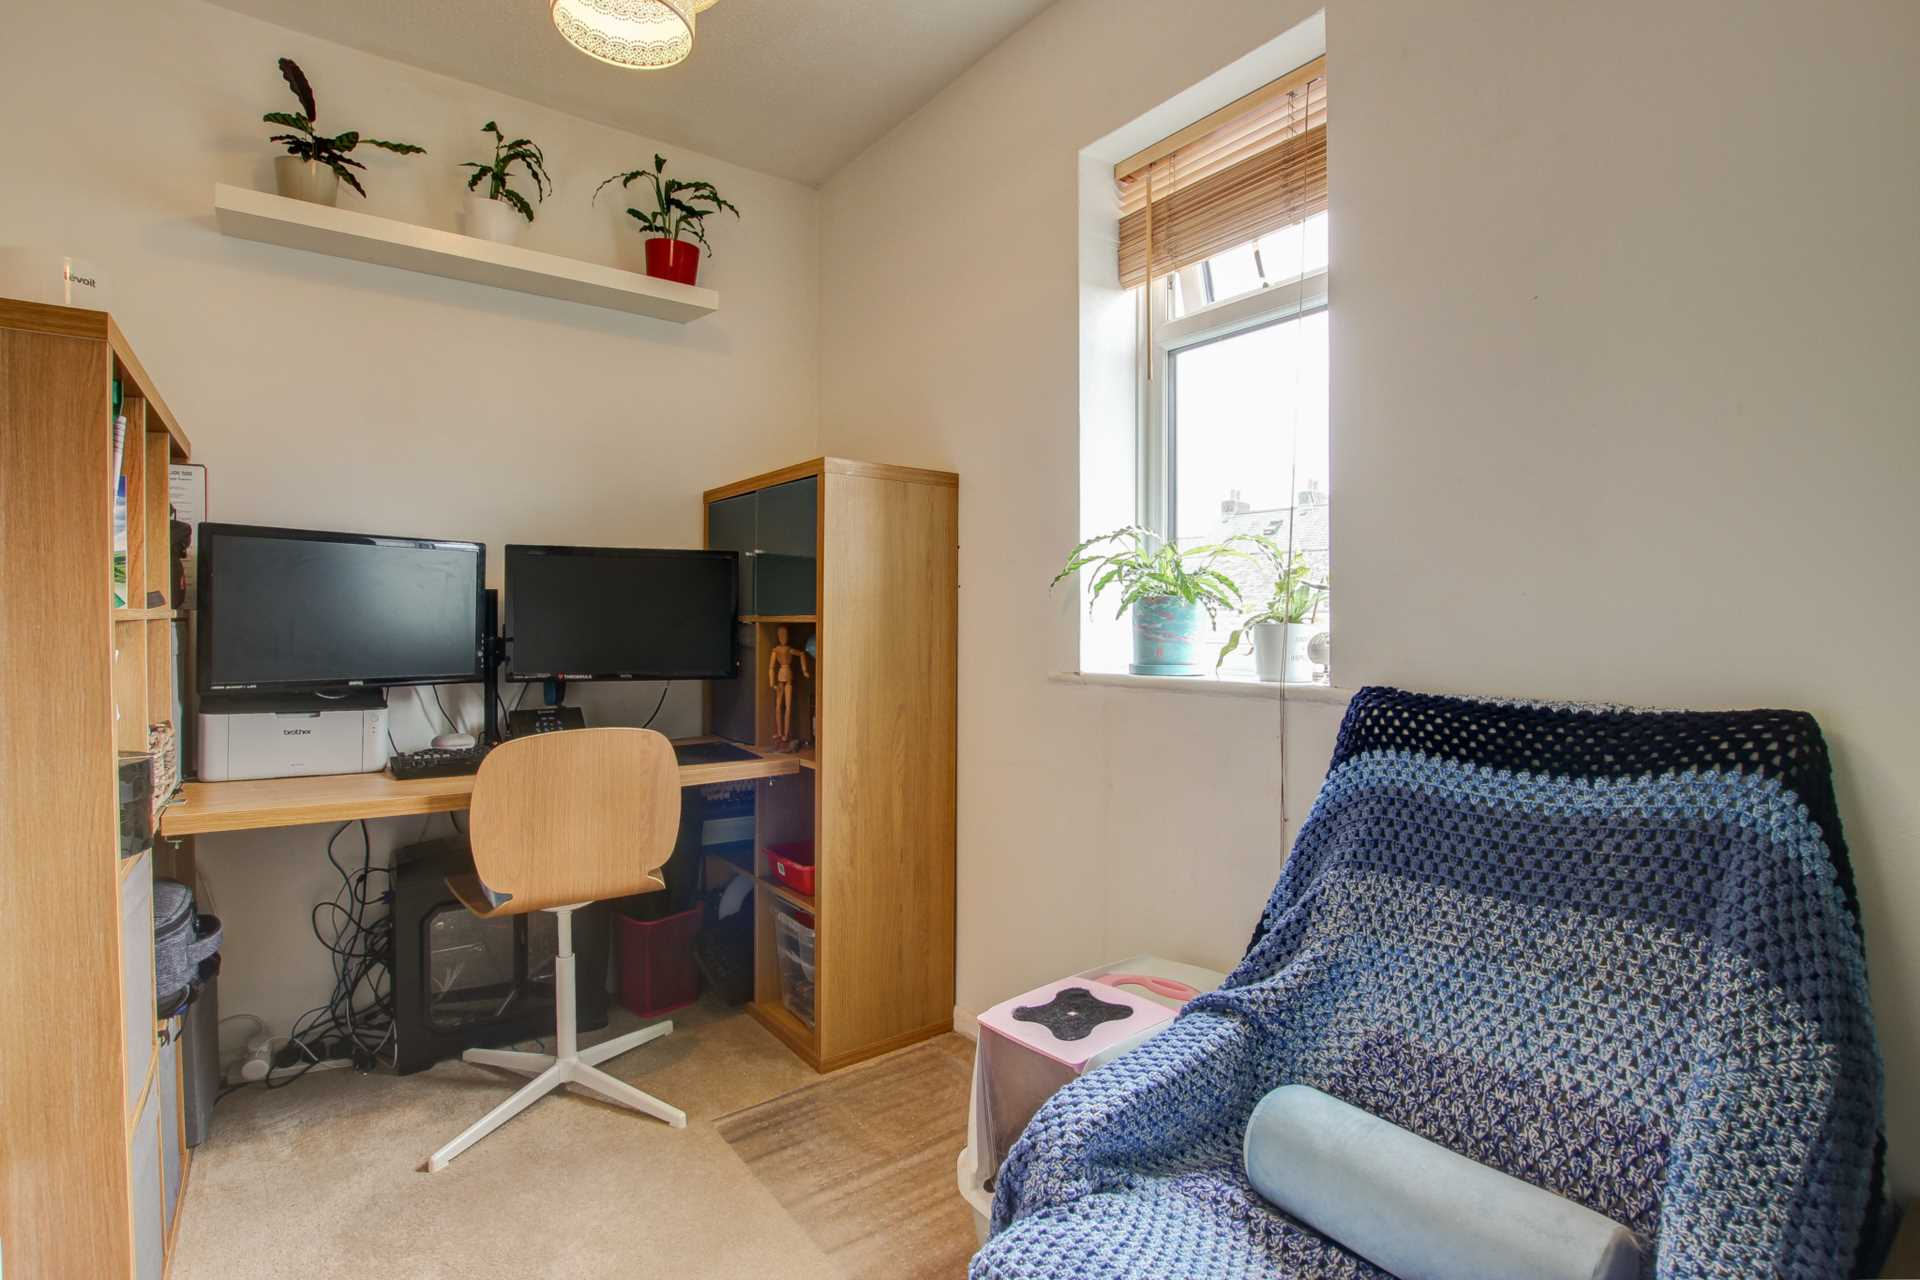 2 bed end of terrace house for sale in The Mews, Shorts Lane, Blandford Forum, Blandford Forum  - Property Image 6